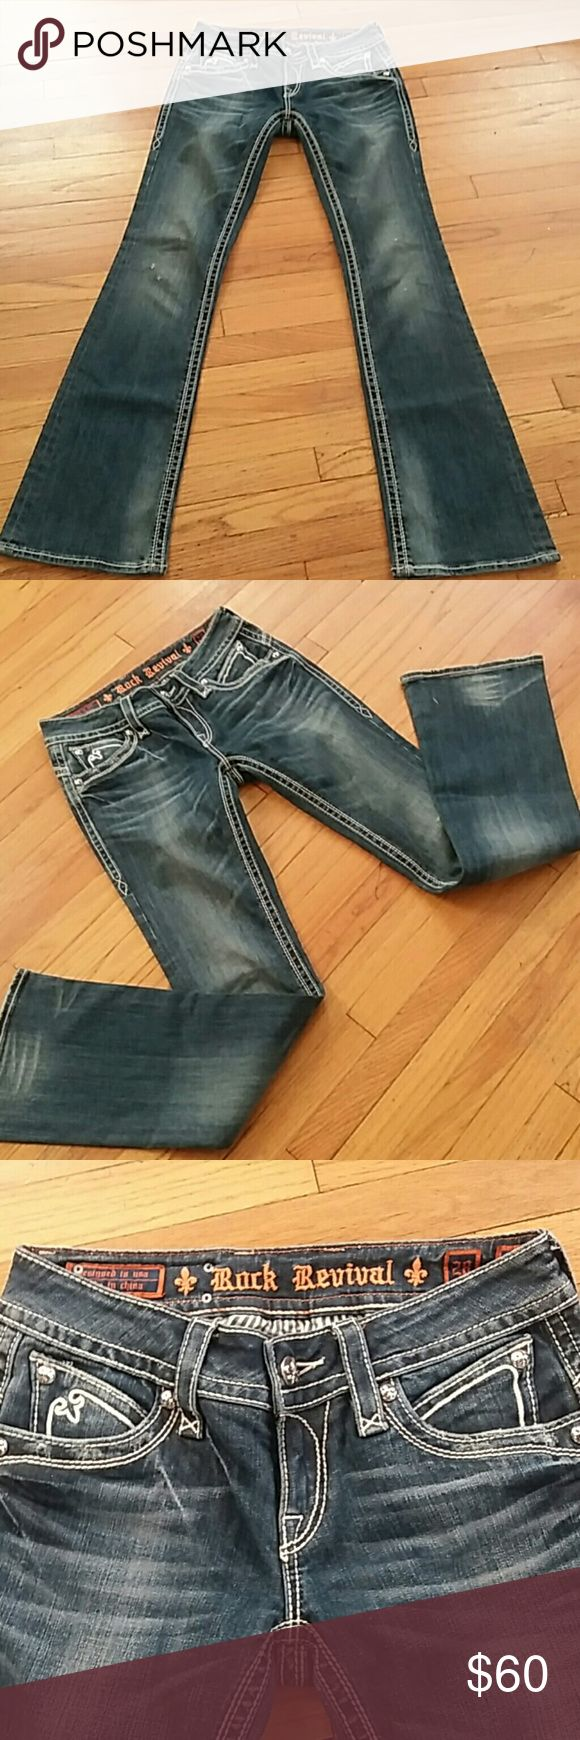 ROCK REVIVAL Nice women jeans Rock Revival Jeans